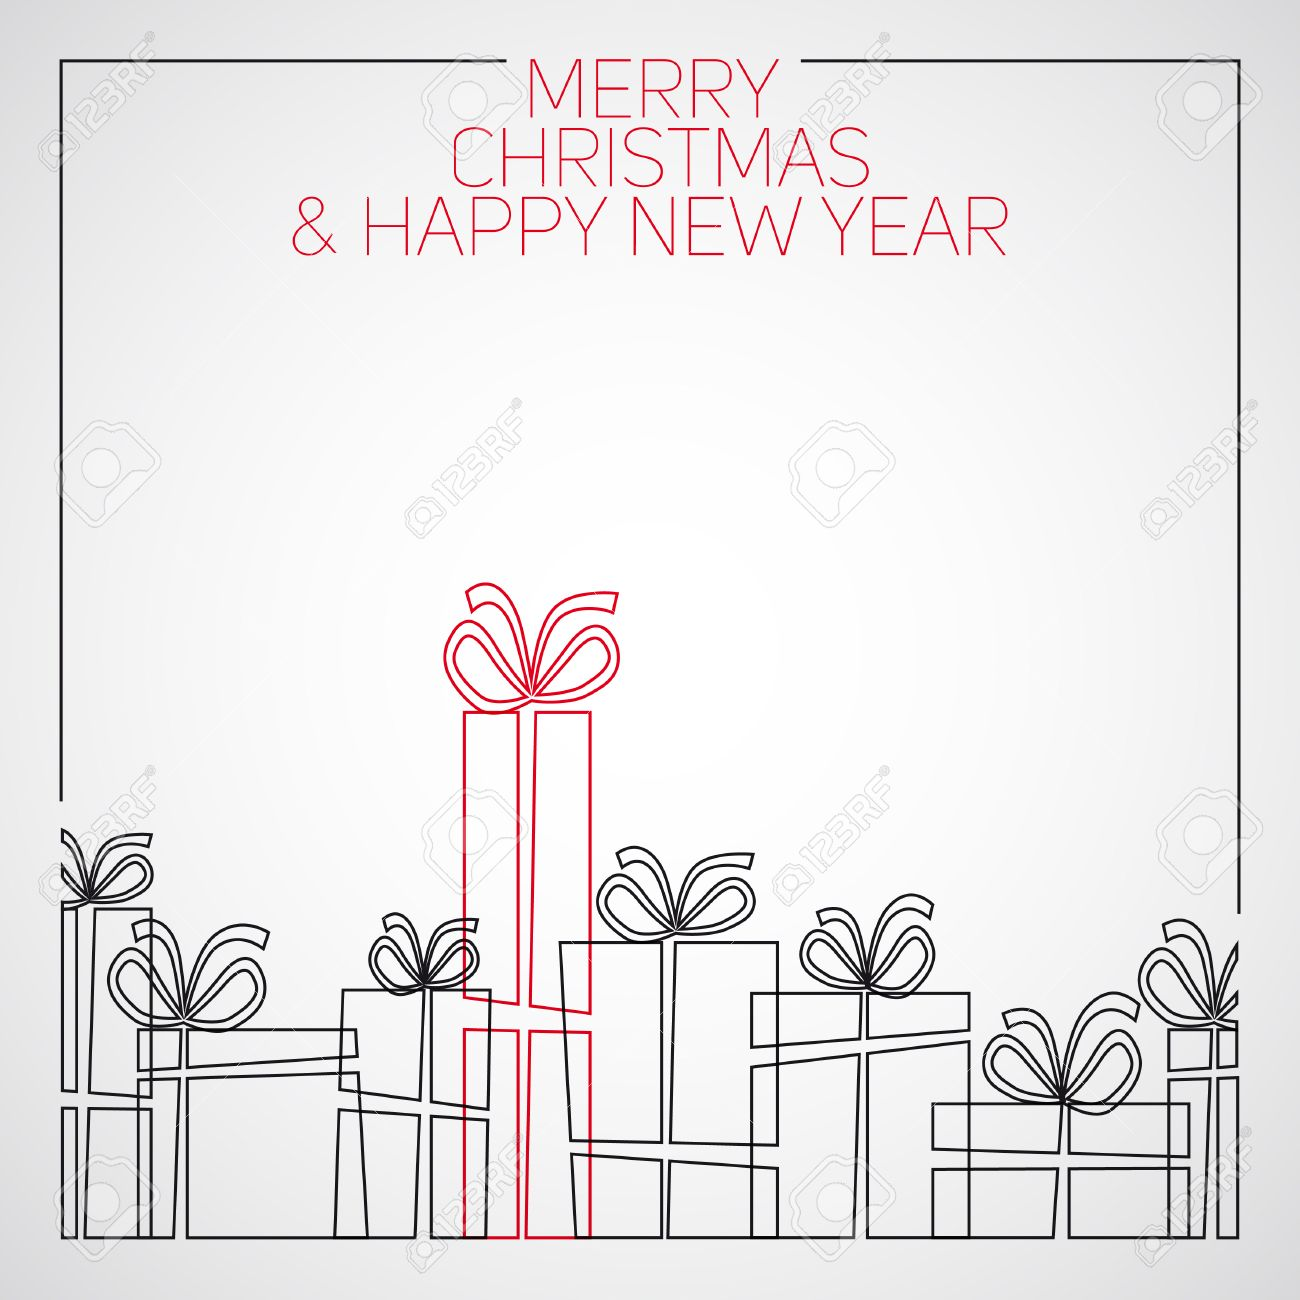 Drawings Of Christmas Presents.Vector Simple Line Drawing Christmas Card Christmas Presents